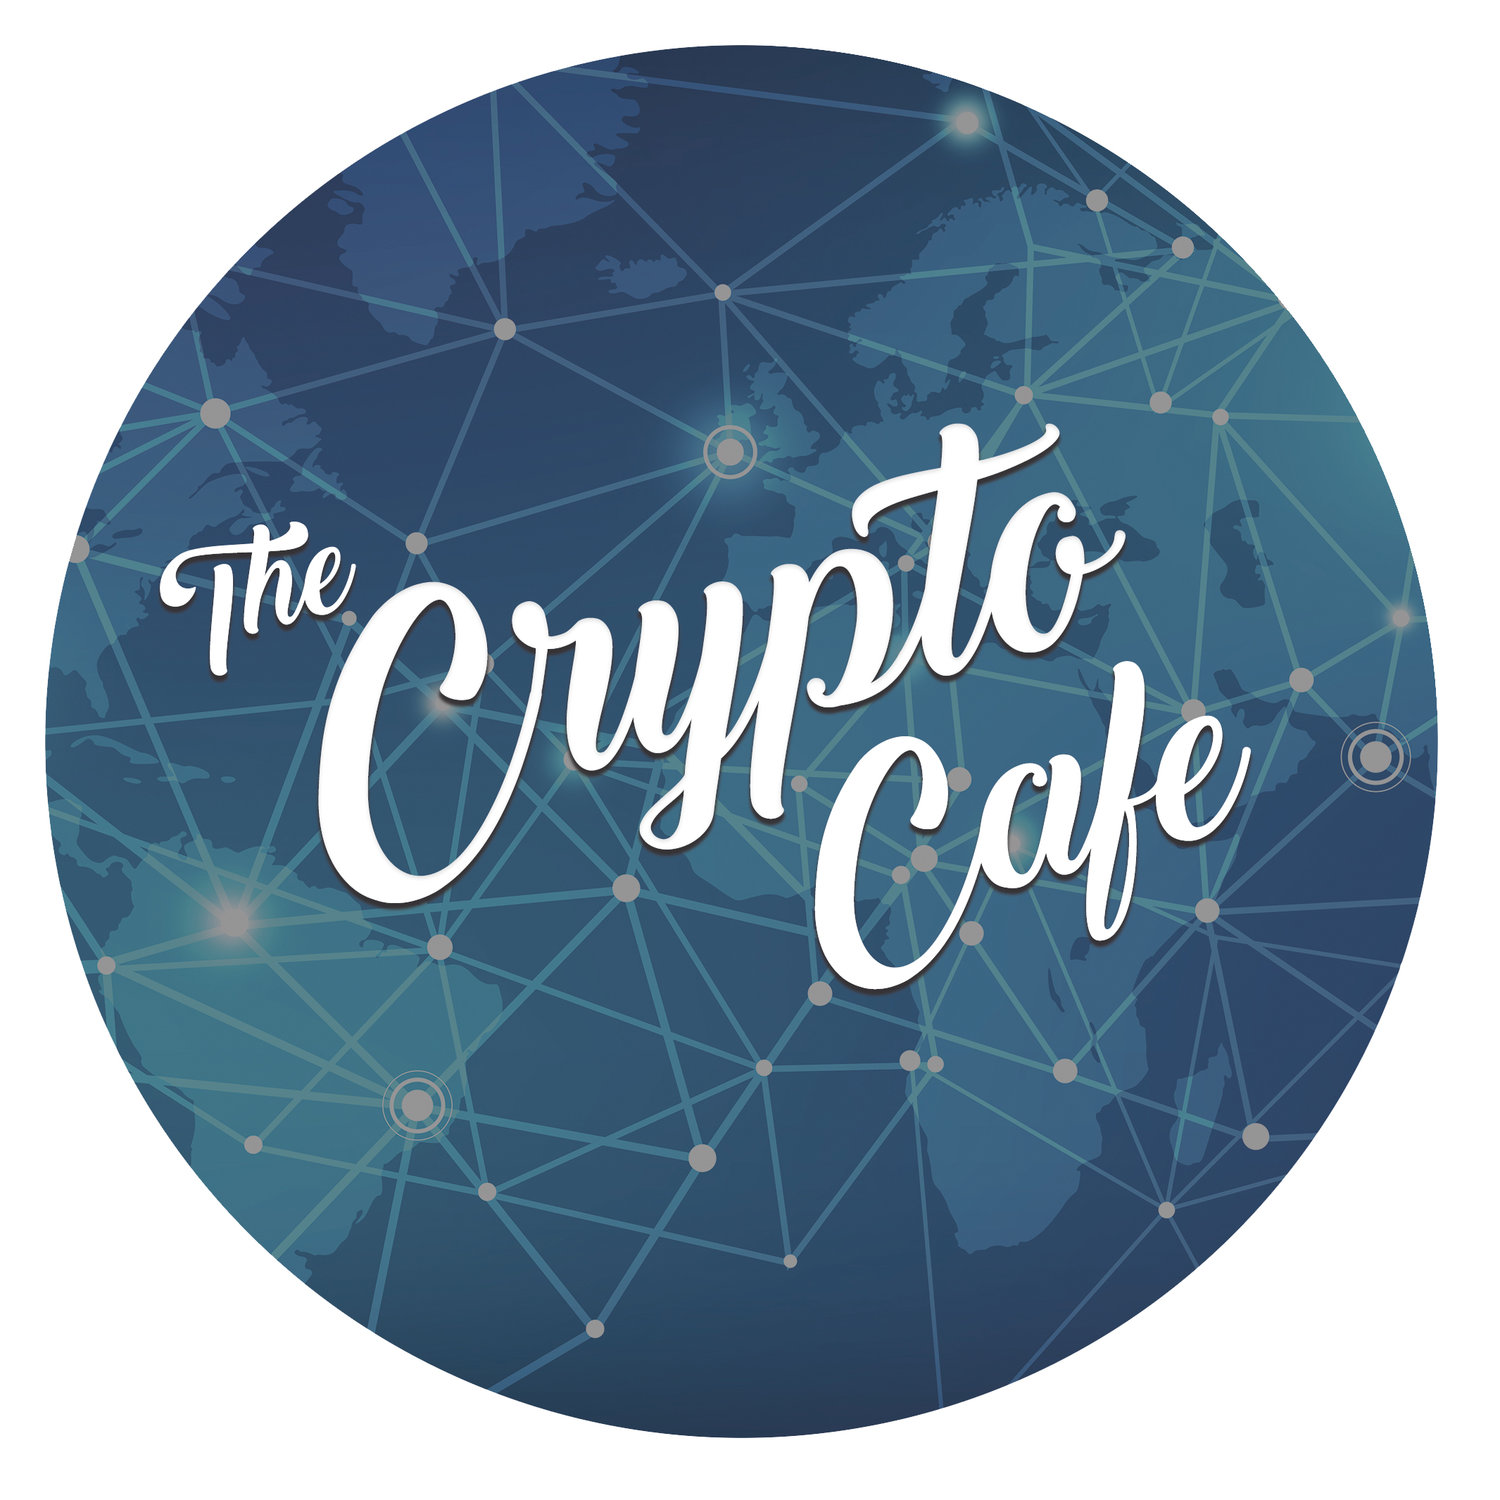 The Crypto Cafe